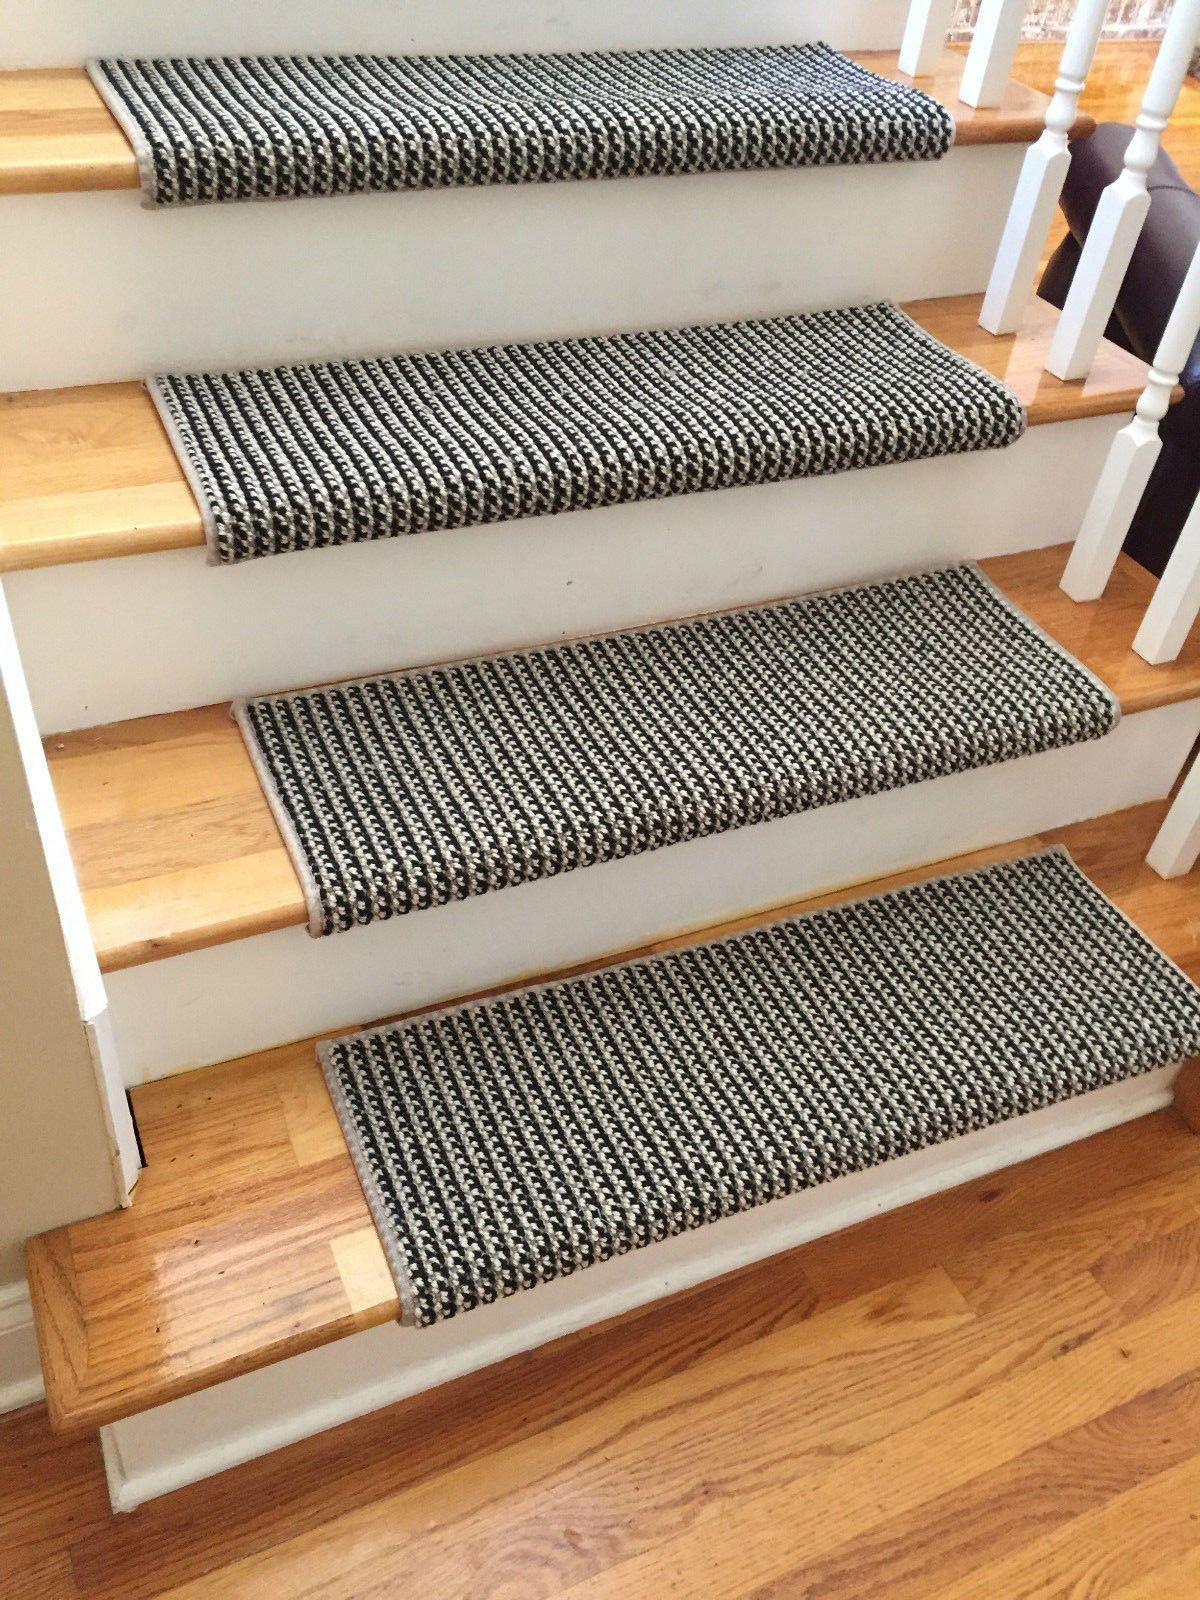 how to lay hardwood floor on stairs of diy wood stairs beautiful diy hardwood stair treads diy pinterest throughout diy wood stairs lovely 23 pretty painted stairs ideas to inspire your home